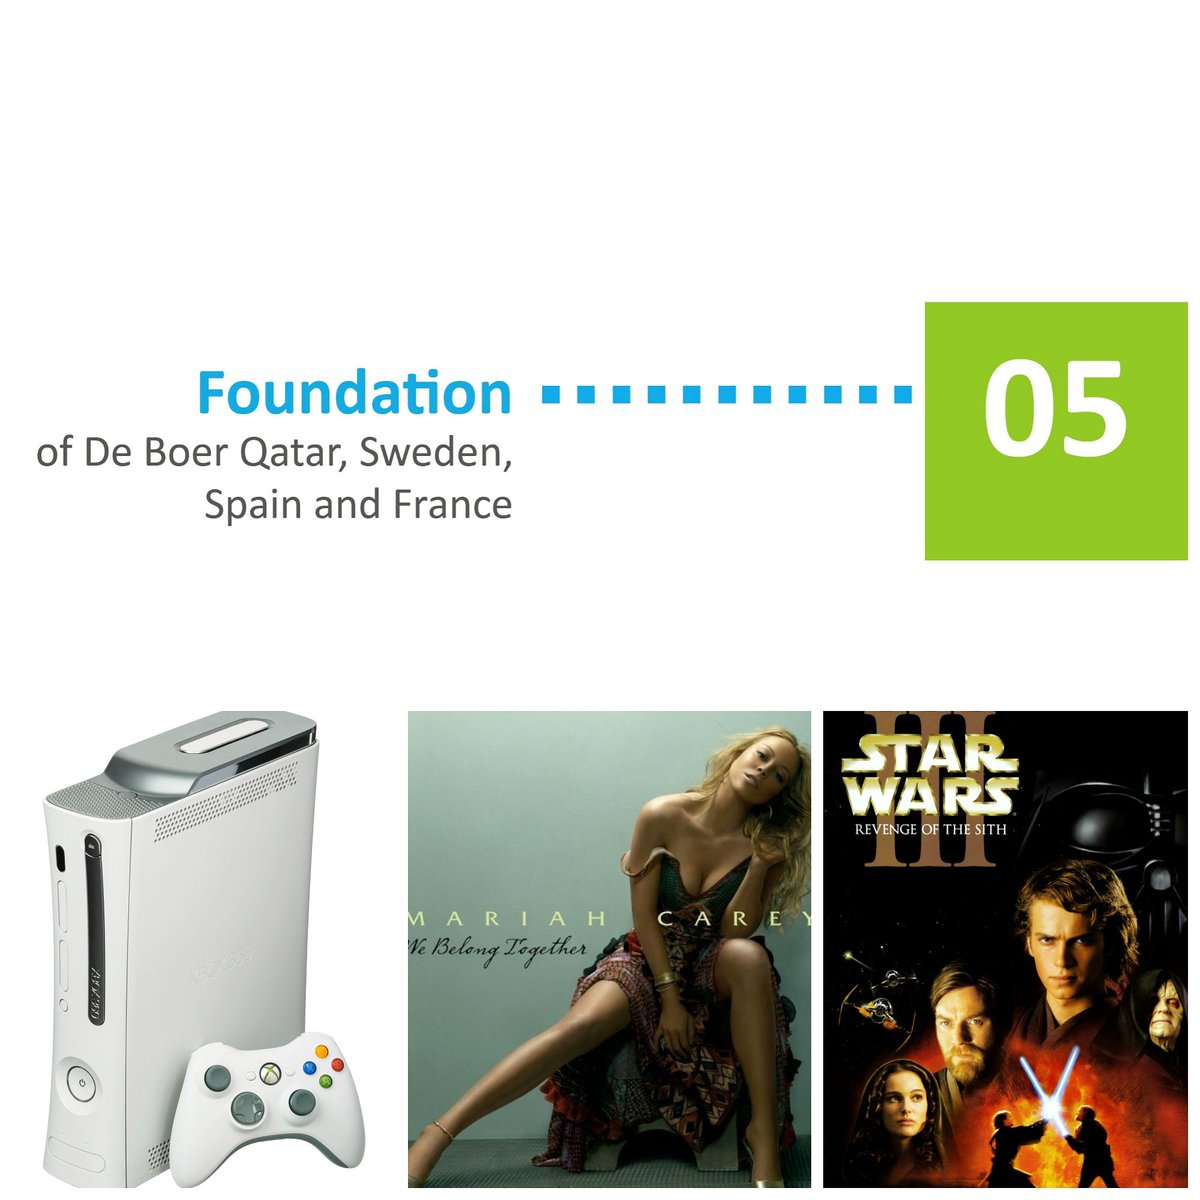 Join us in a weekly journey through our 100-year #history   : #Year2005  : Foundation of De Boer Qatar, Sweden, Spain & France  : XBox 360 is released : Mariah Carey's 'We Belong Together ' tops the charts  : Star Wars III Revenge of the Sith dominates the Big Screen pic.twitter.com/nDHlvohYzF